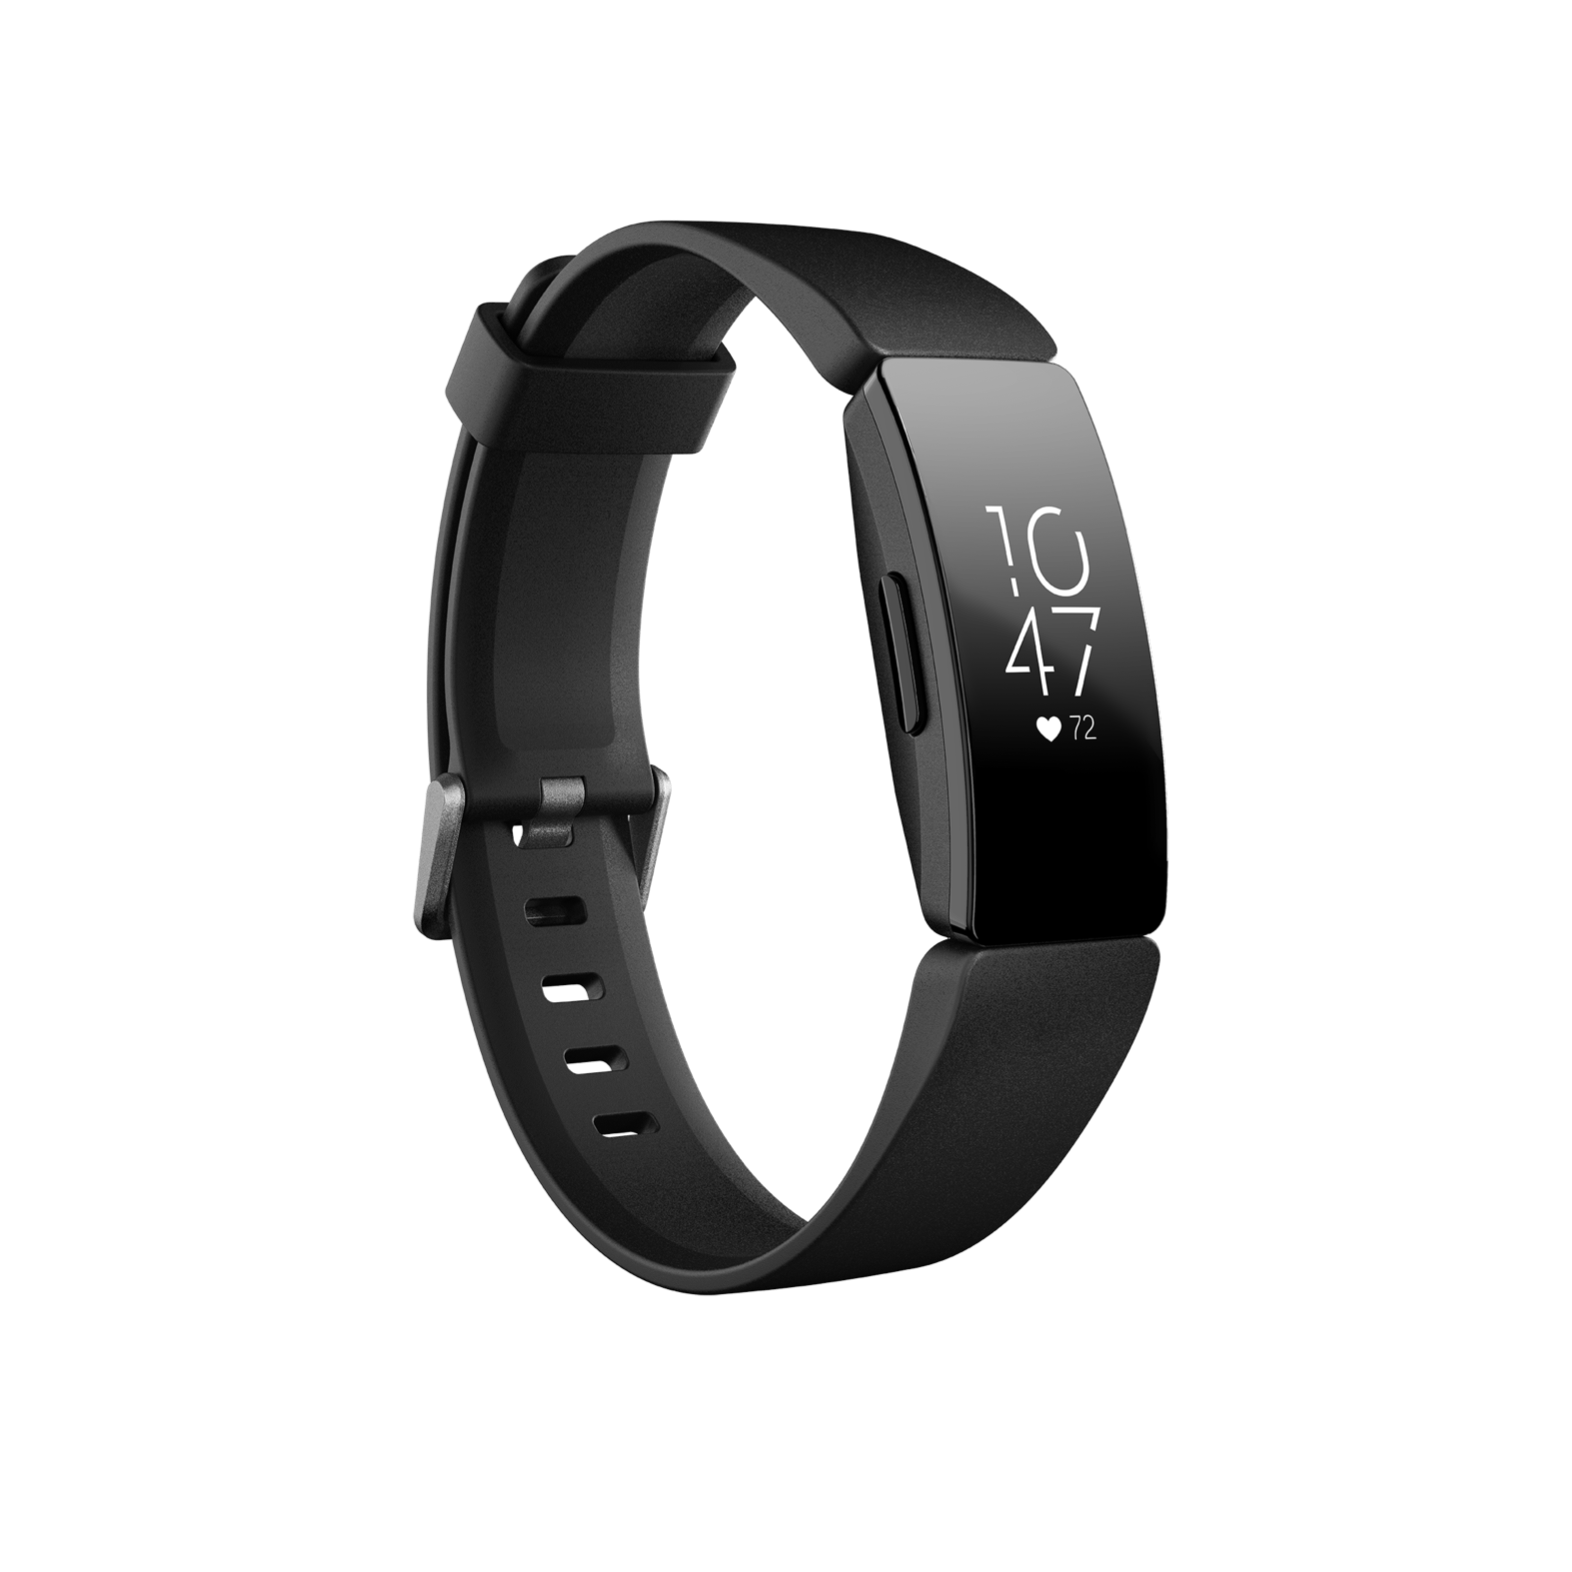 Fitbit Inspire Fitness Wristband with Heart Rate Tracker